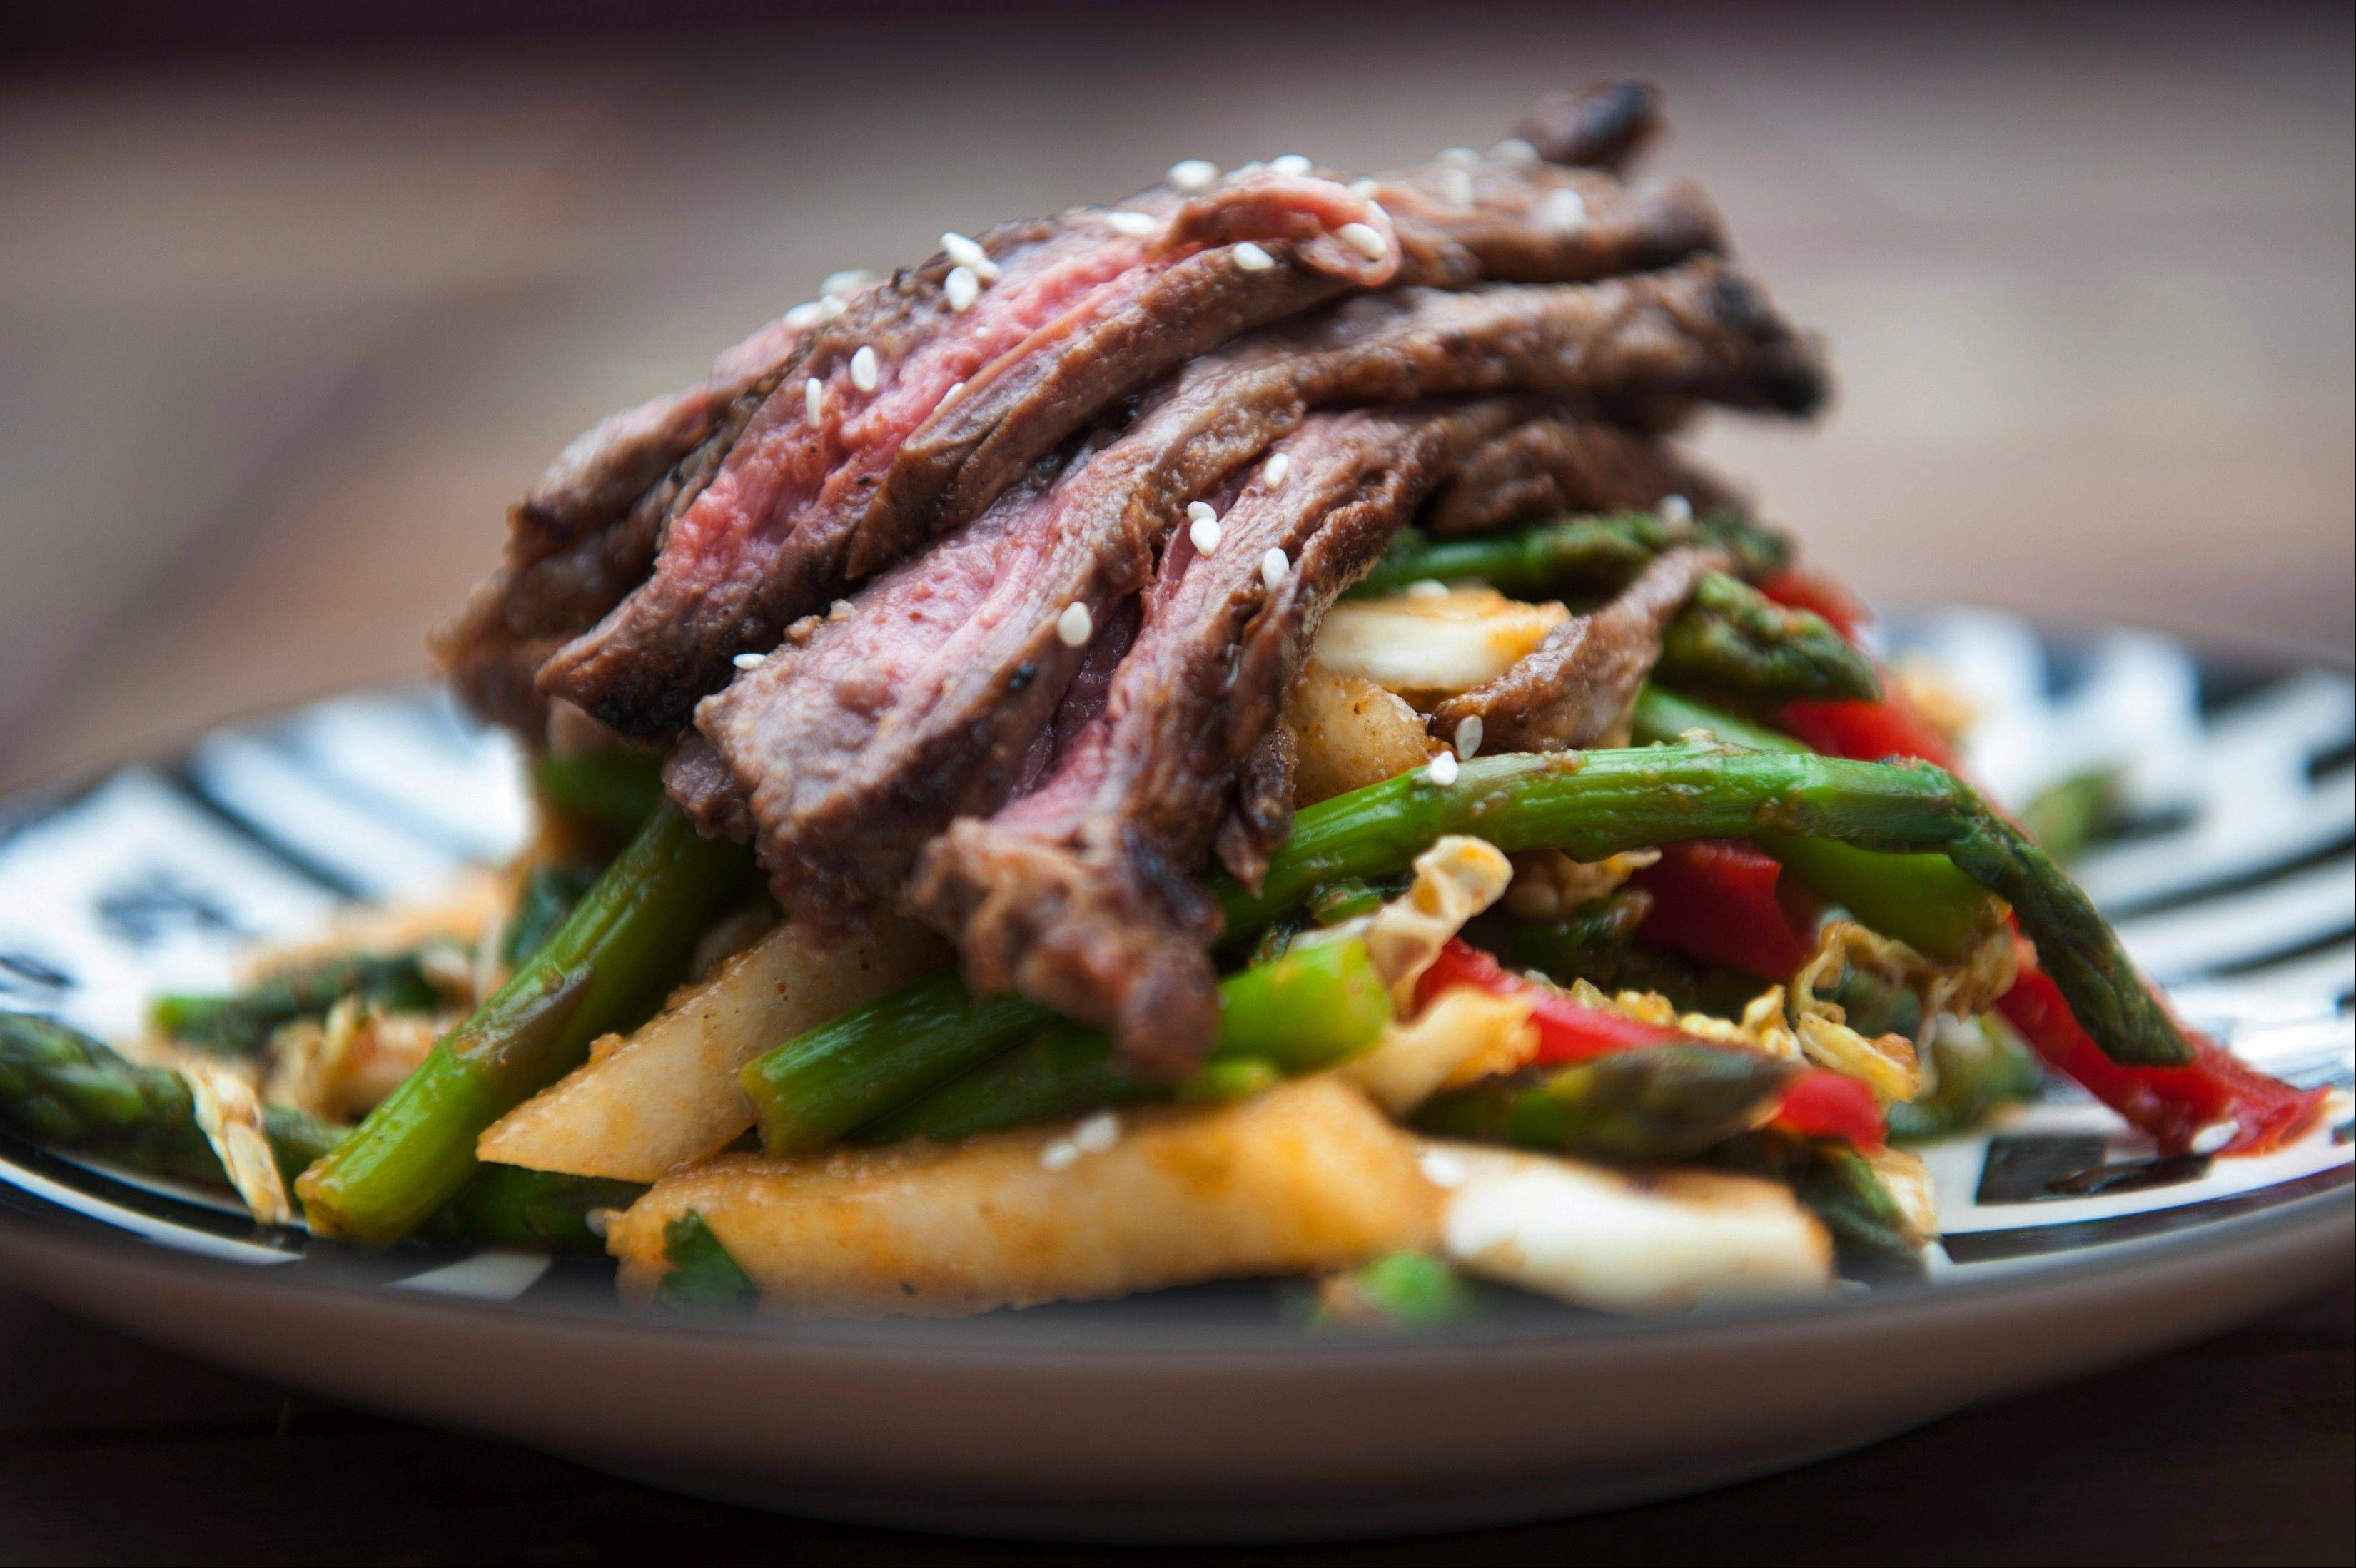 Asian pears contain enzymes that act as meat tenderizers for this Thai Skirt Steak Salad With Asparagus and Asian Pears.